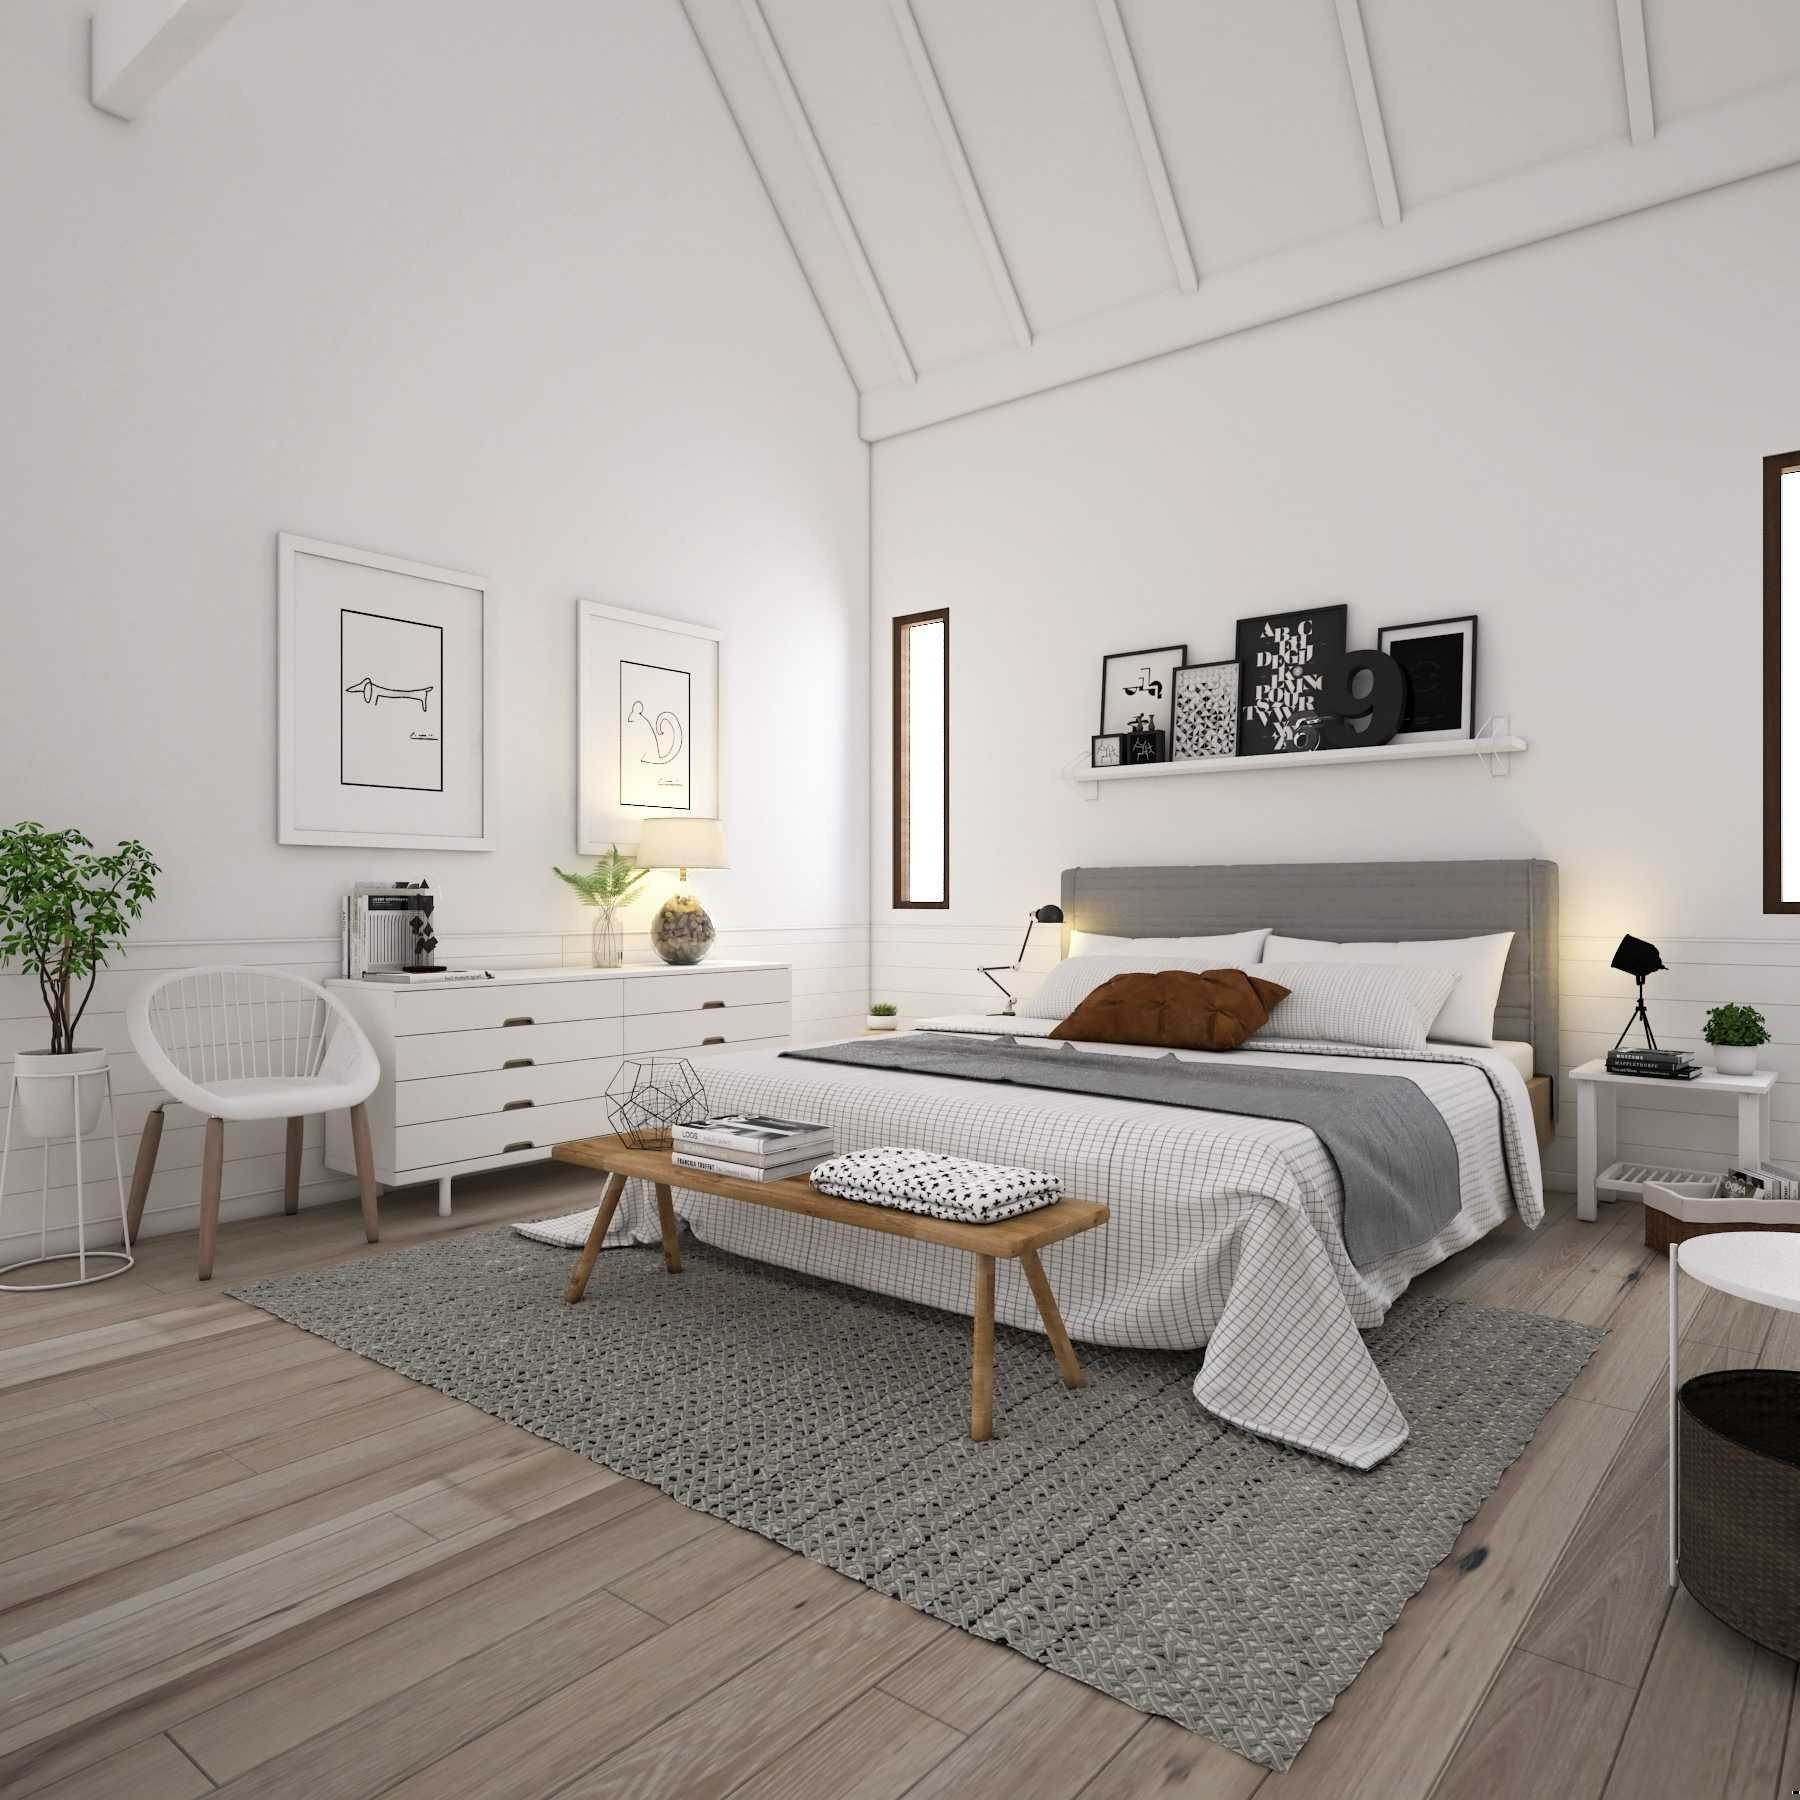 Scandinavian Decor On A Budget Luxury Scandinavia Bedroom Scandinavian House Medan Sumatra Utara Lasa Interior